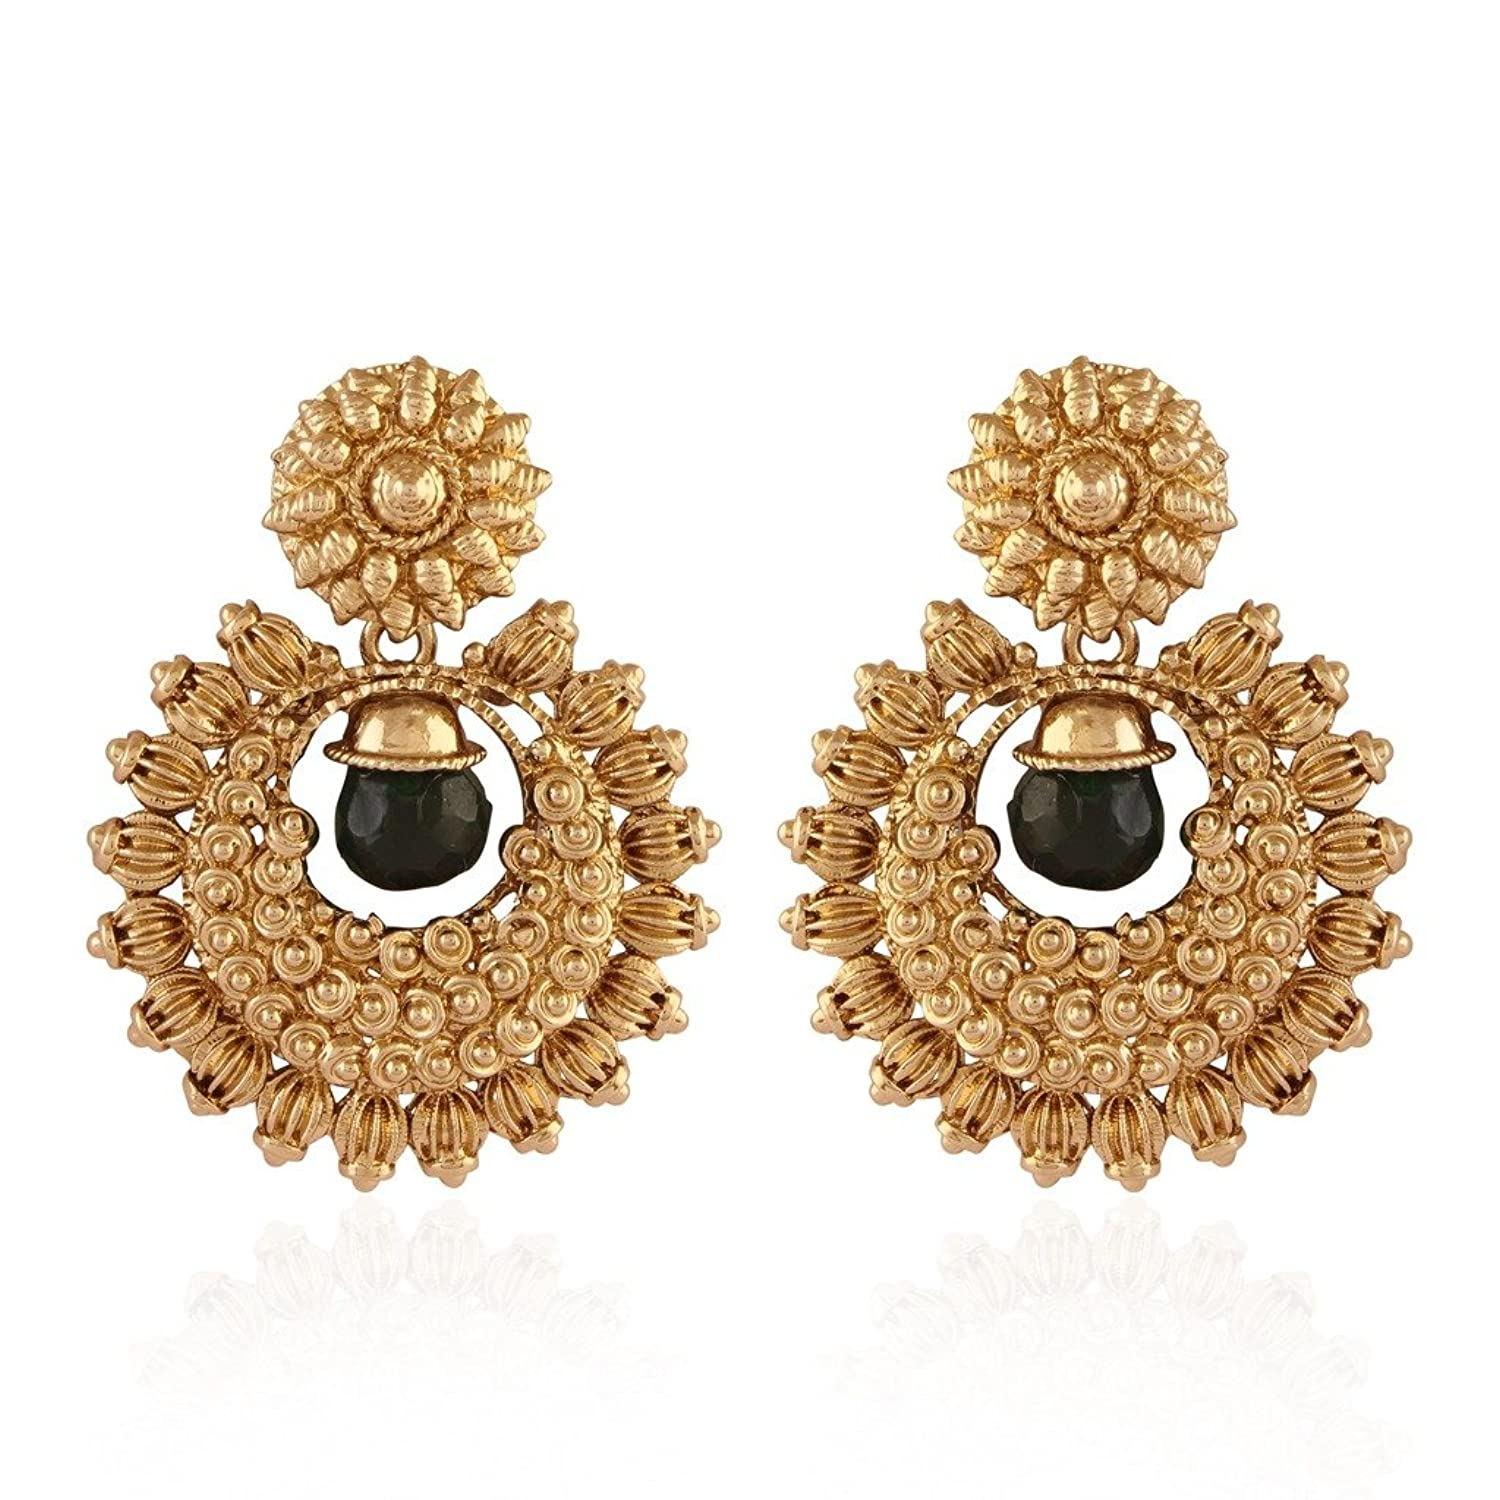 Buy I Jewels Traditional Gold Plated Chand Shaped Temple Earrings ...